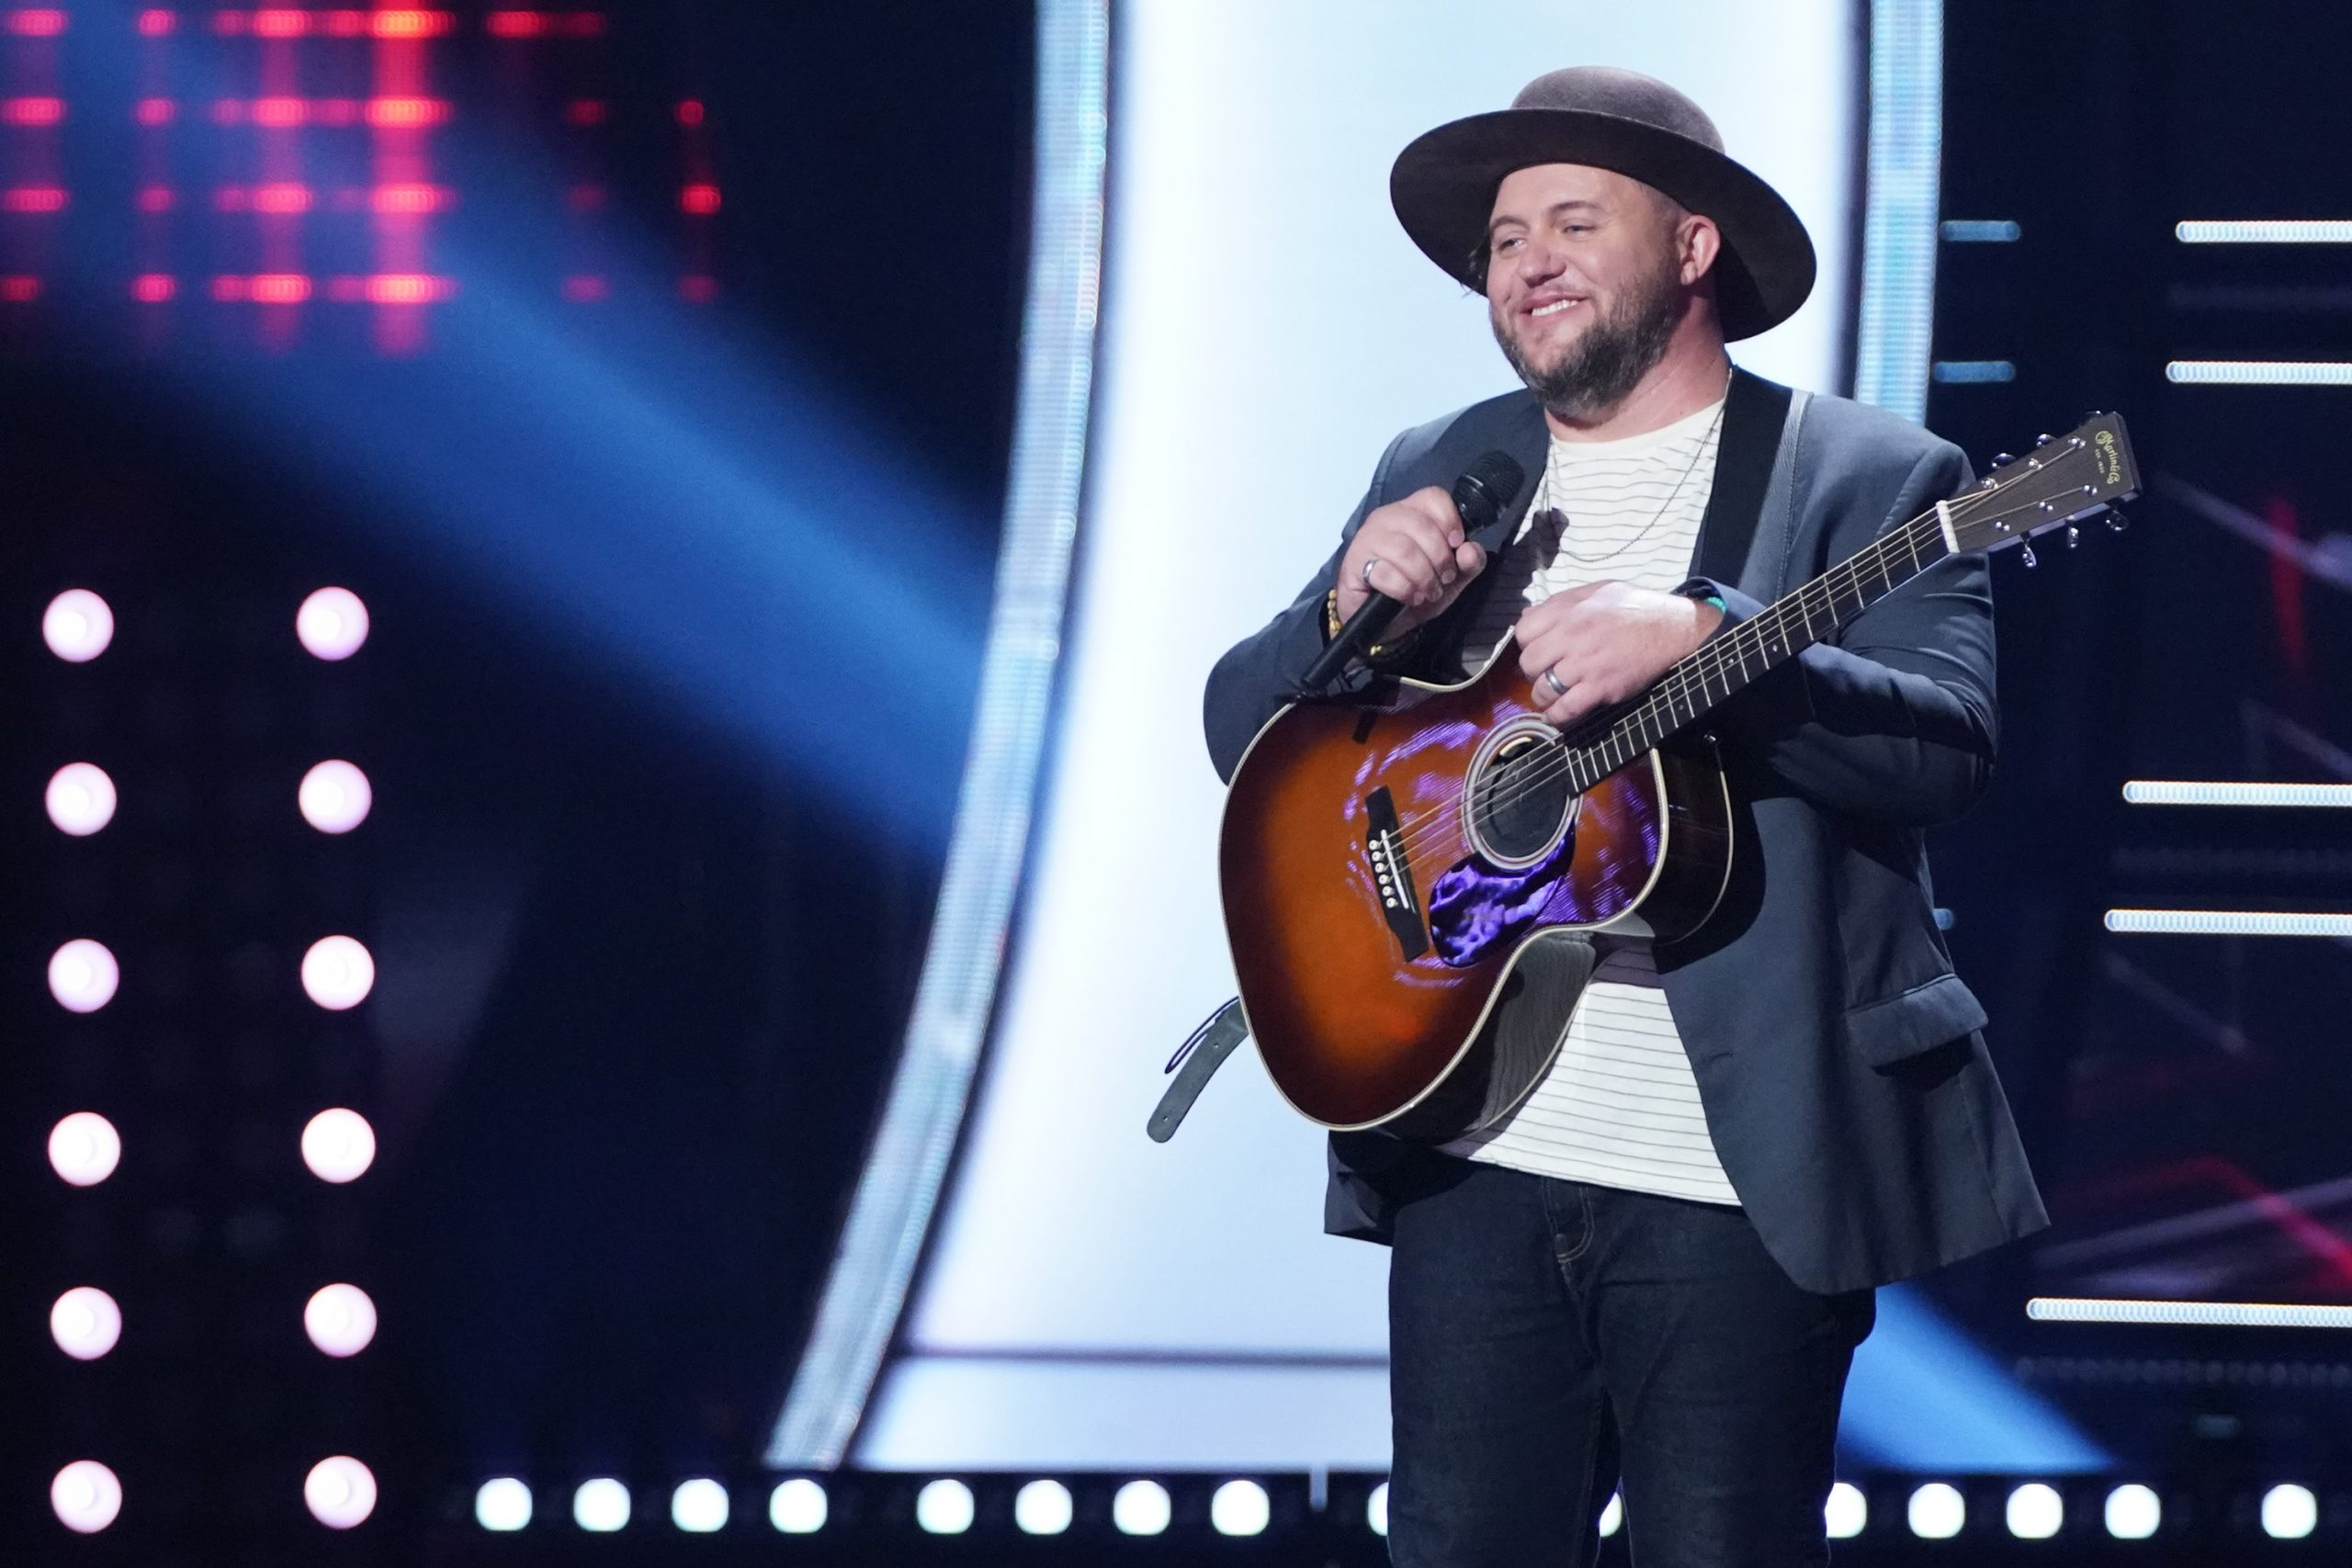 WATCH: California Pastor Advances on NBC's 'The Voice'